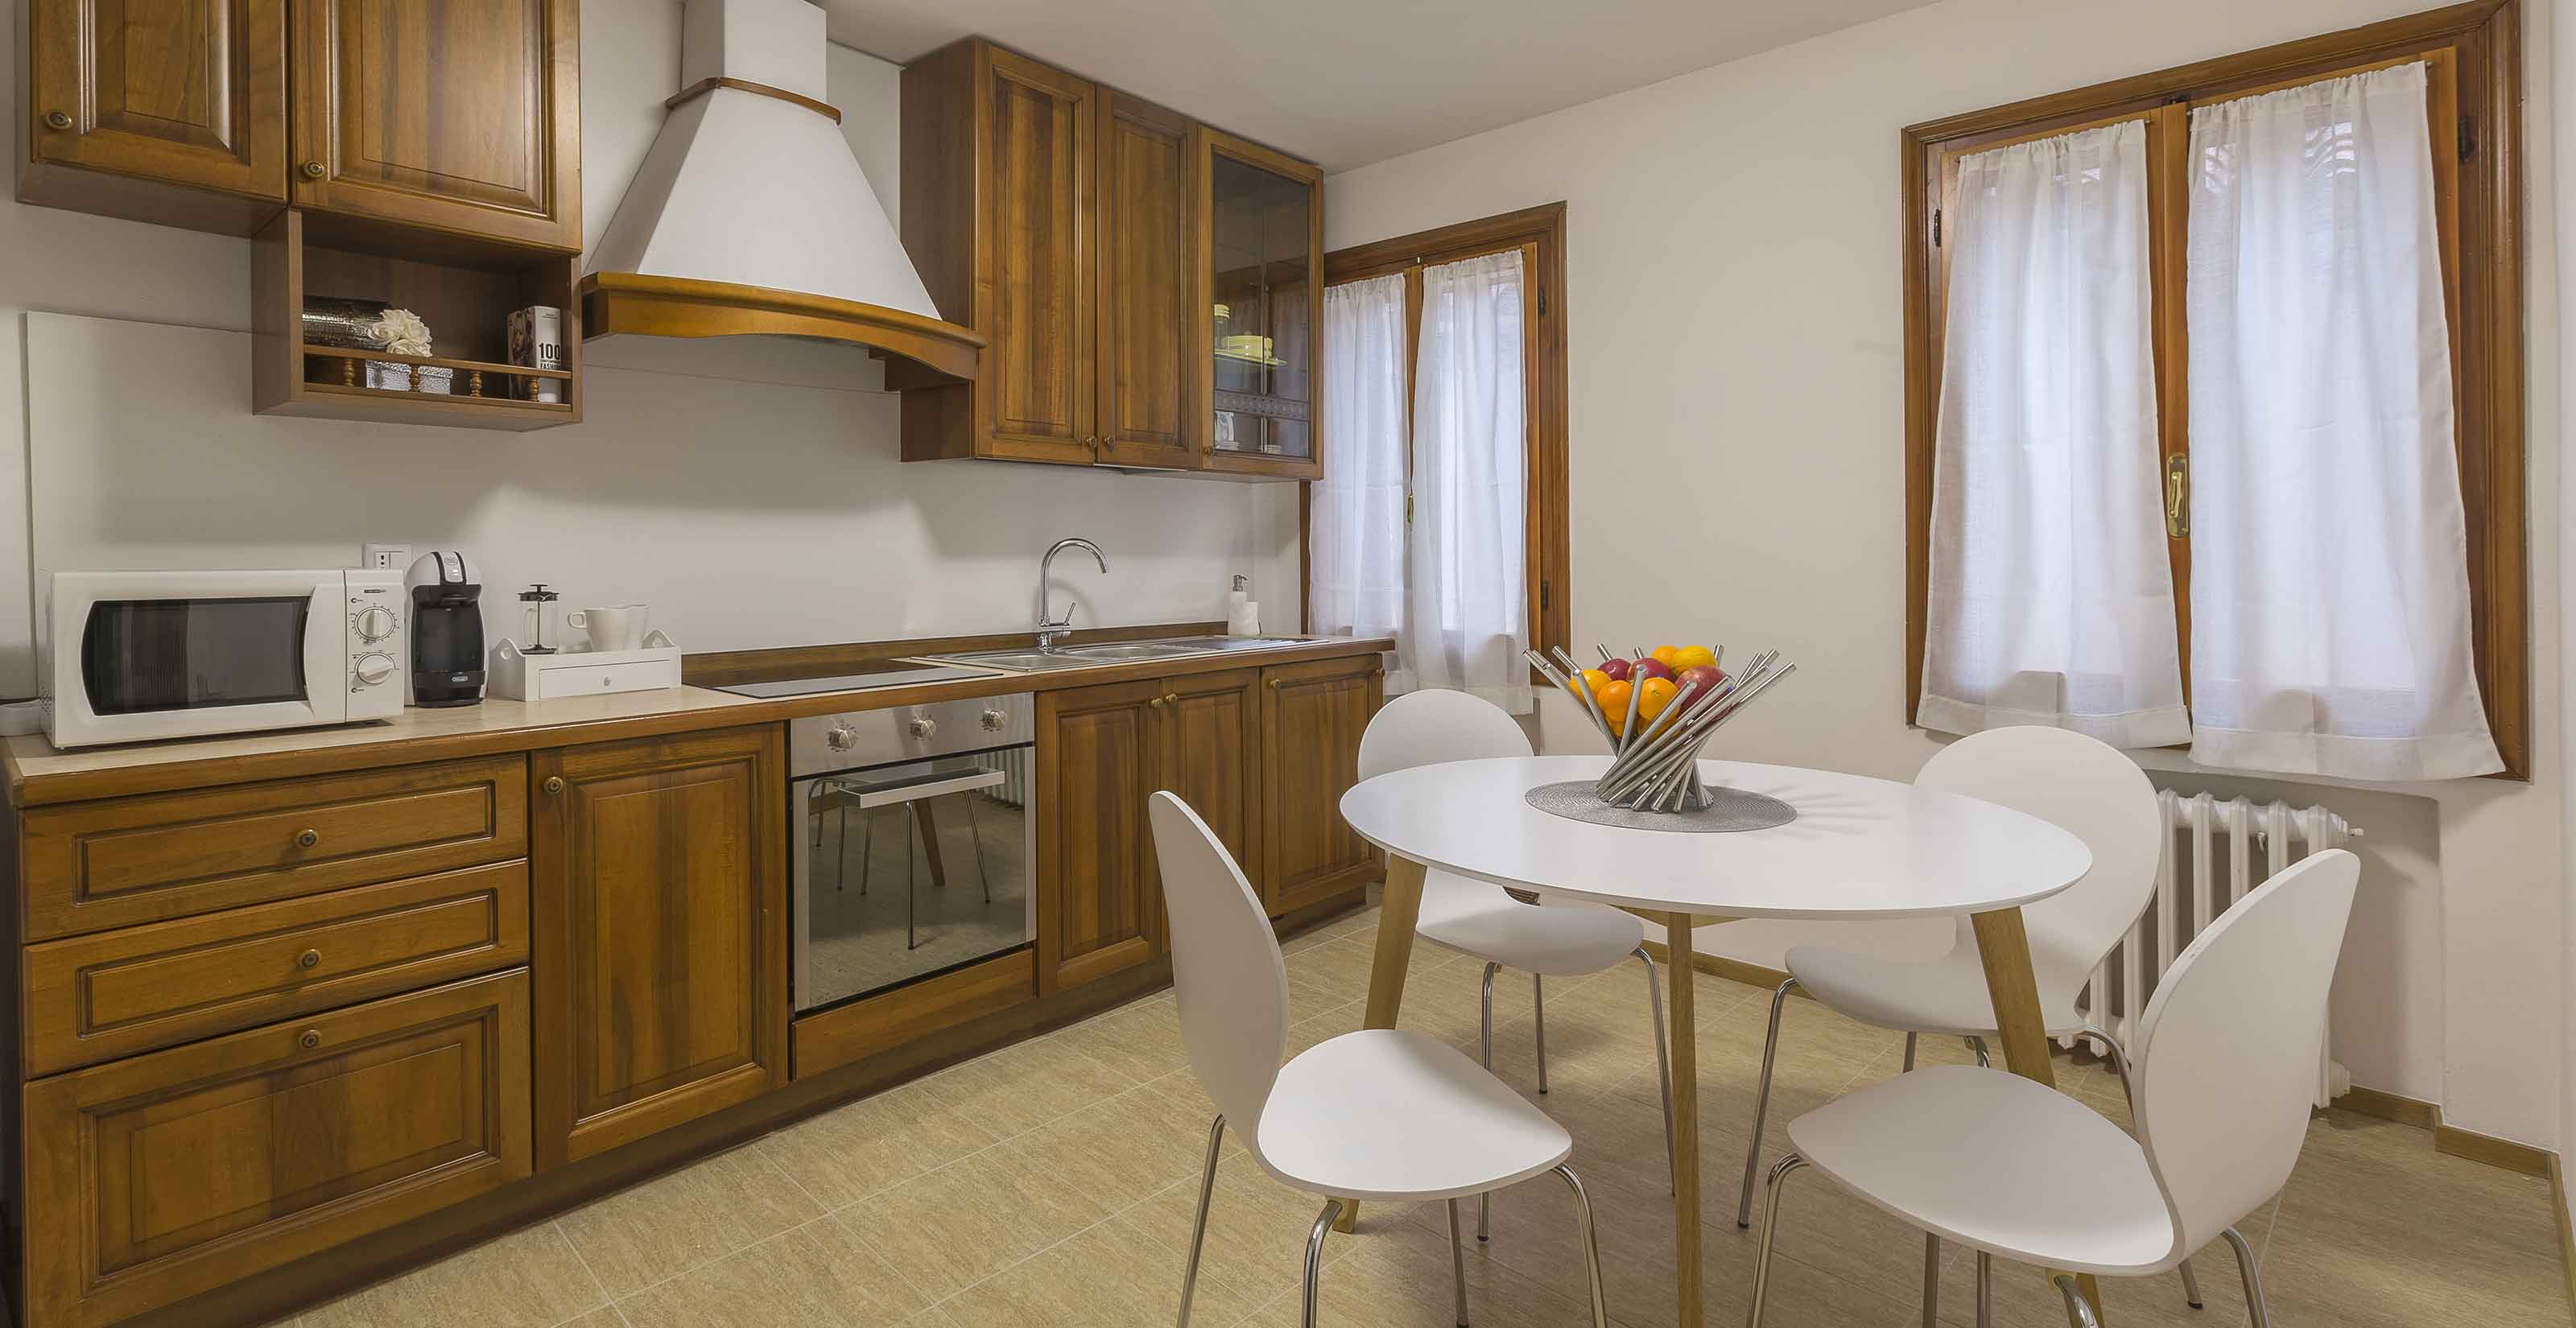 Benedetto Marcello - Vacation Rentals Apartments